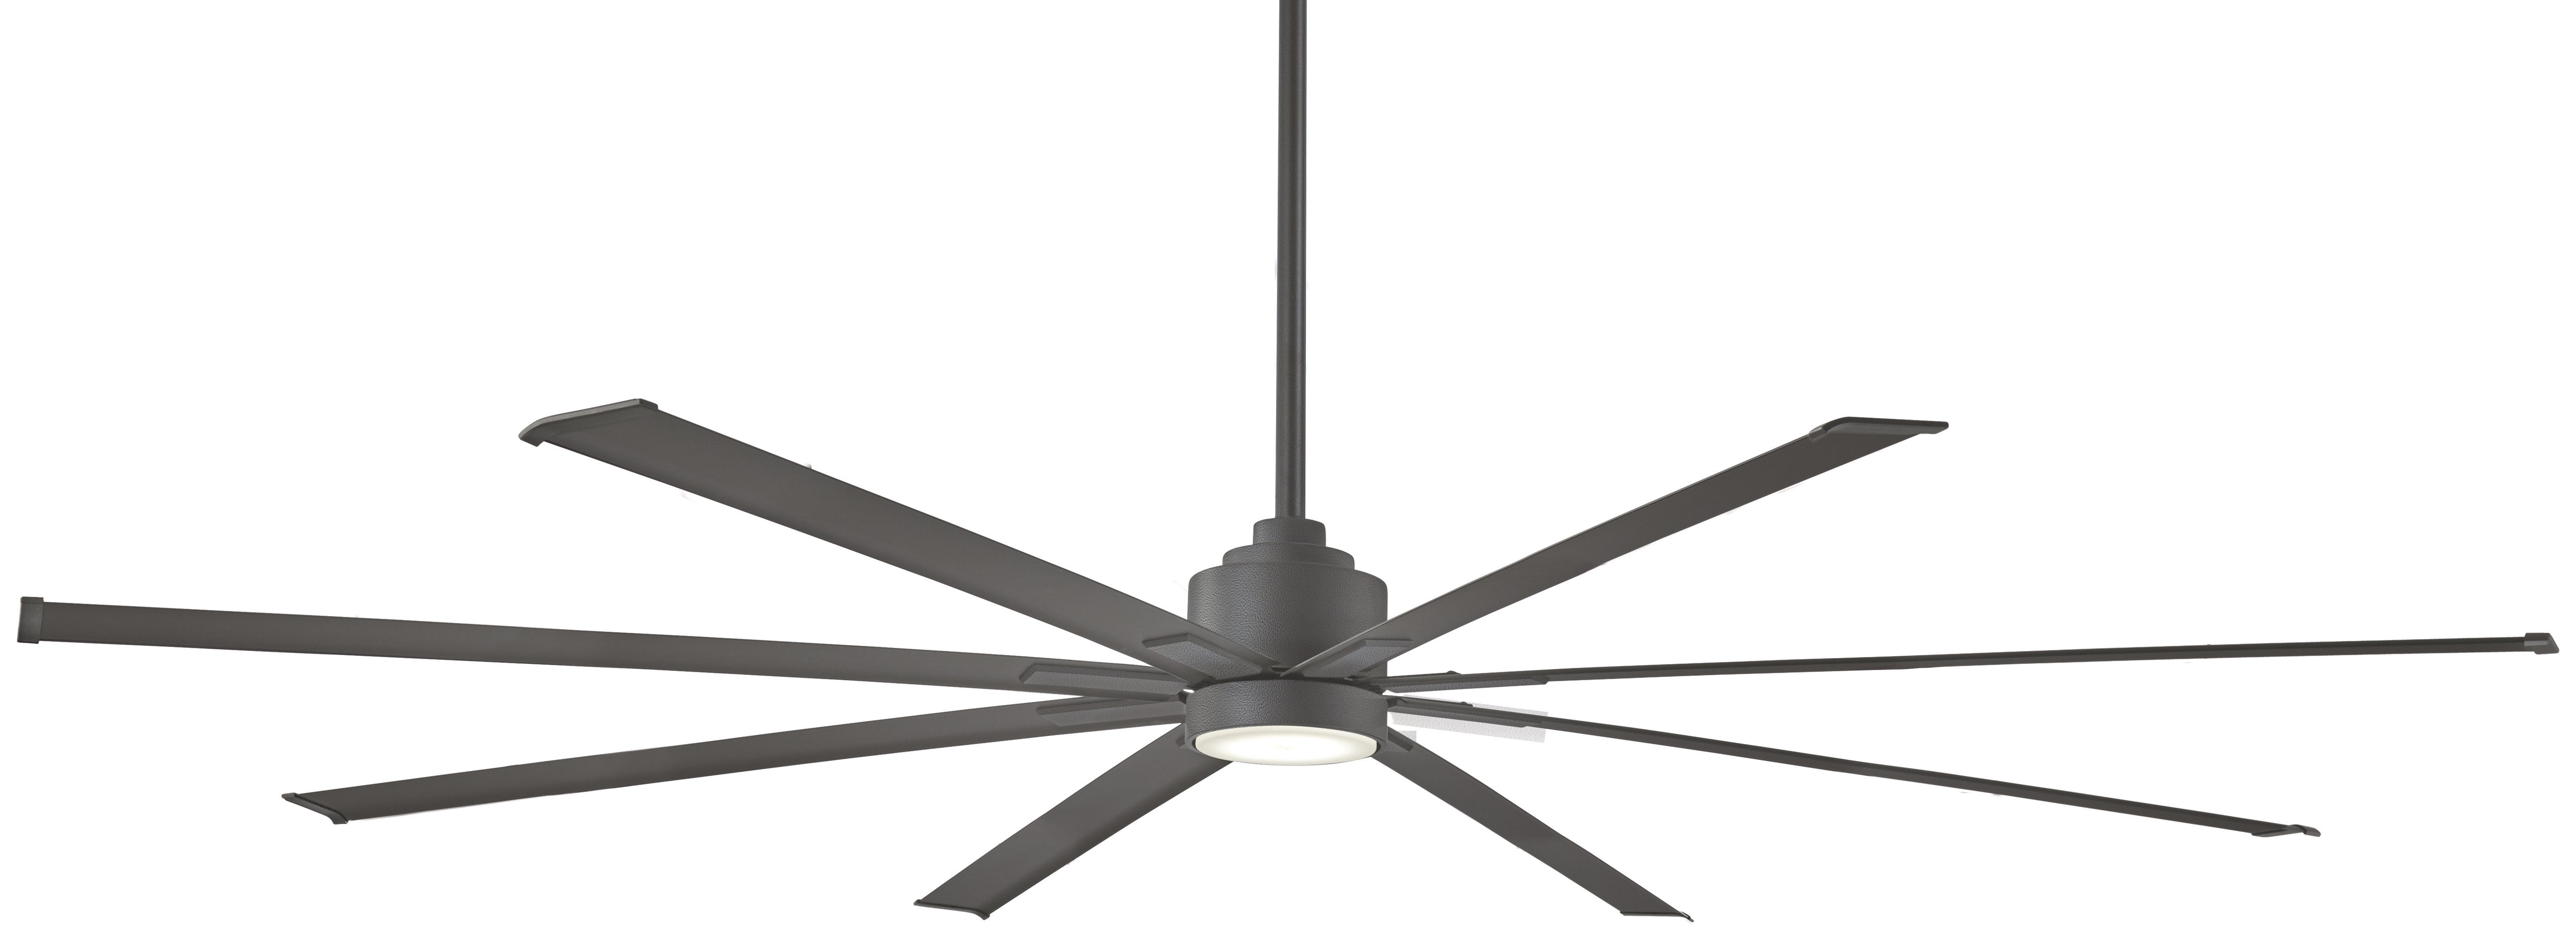 "Minka Aire 84"" Xtreme 8 Outdoor Ceiling Fan With Remote & Reviews In Trendy Outdoor Ceiling Fans With Remote And Light (View 11 of 20)"